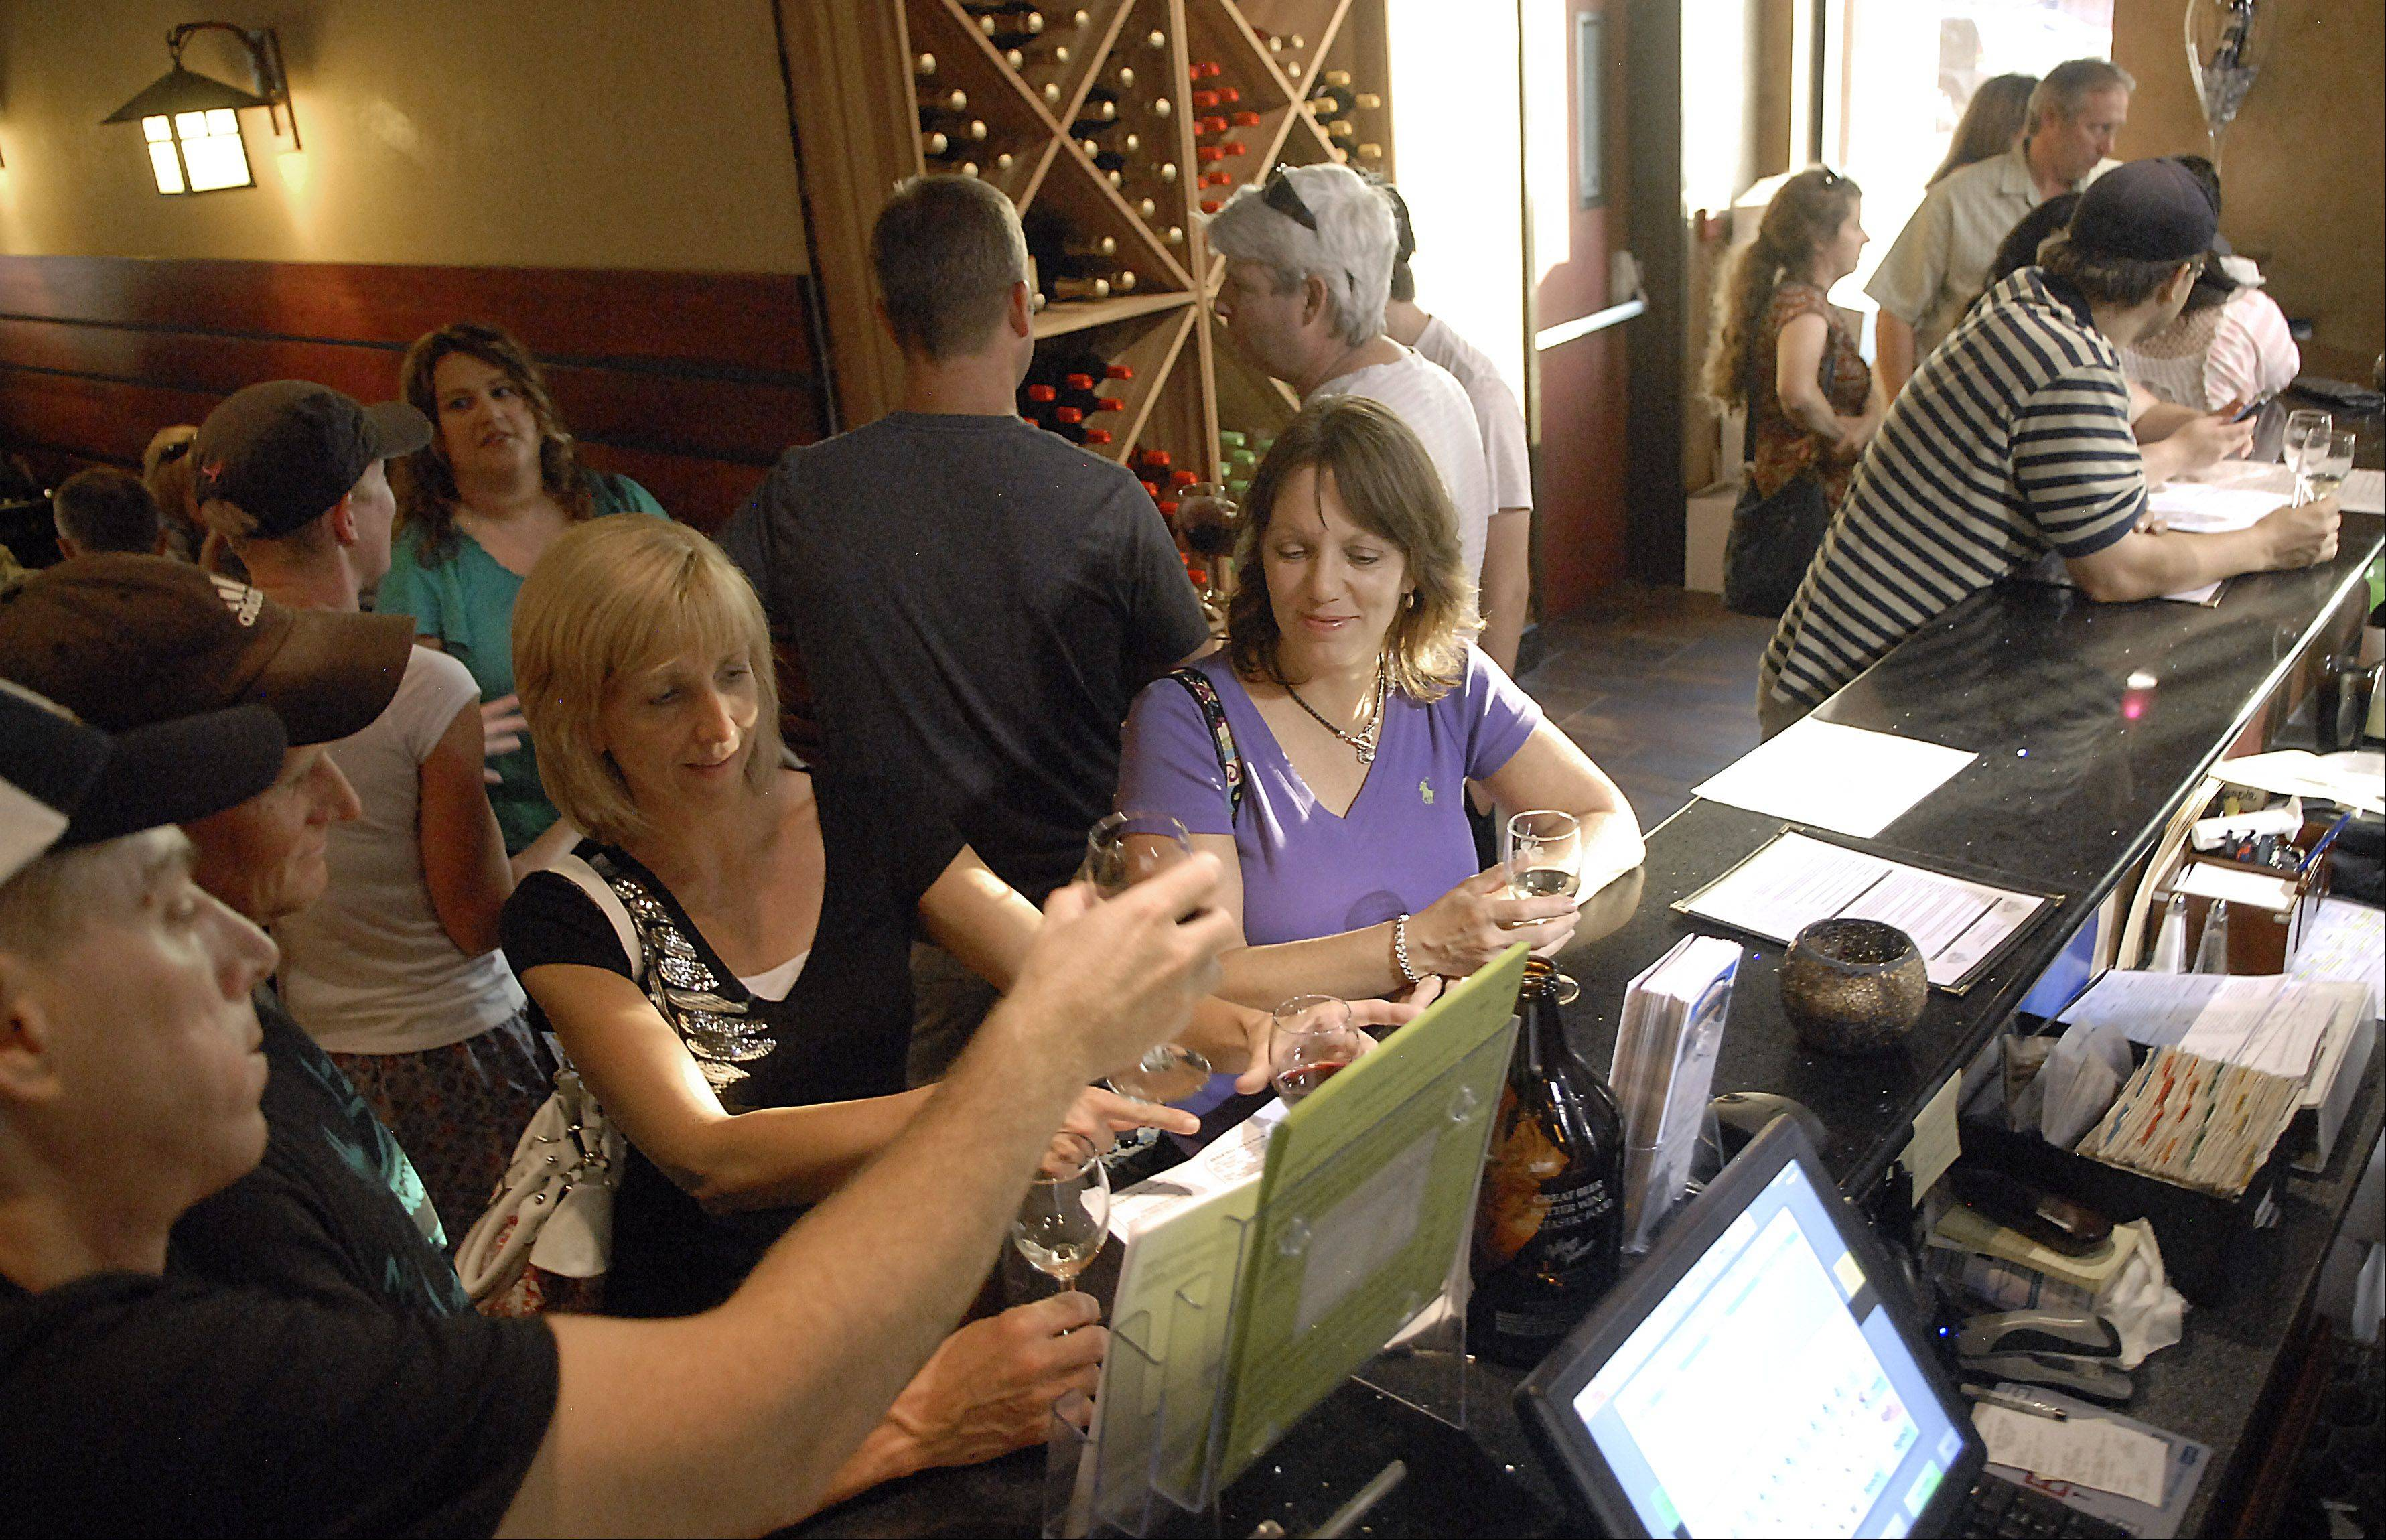 Customers check out the wine tasting at the Village Vitner in Algonquin.